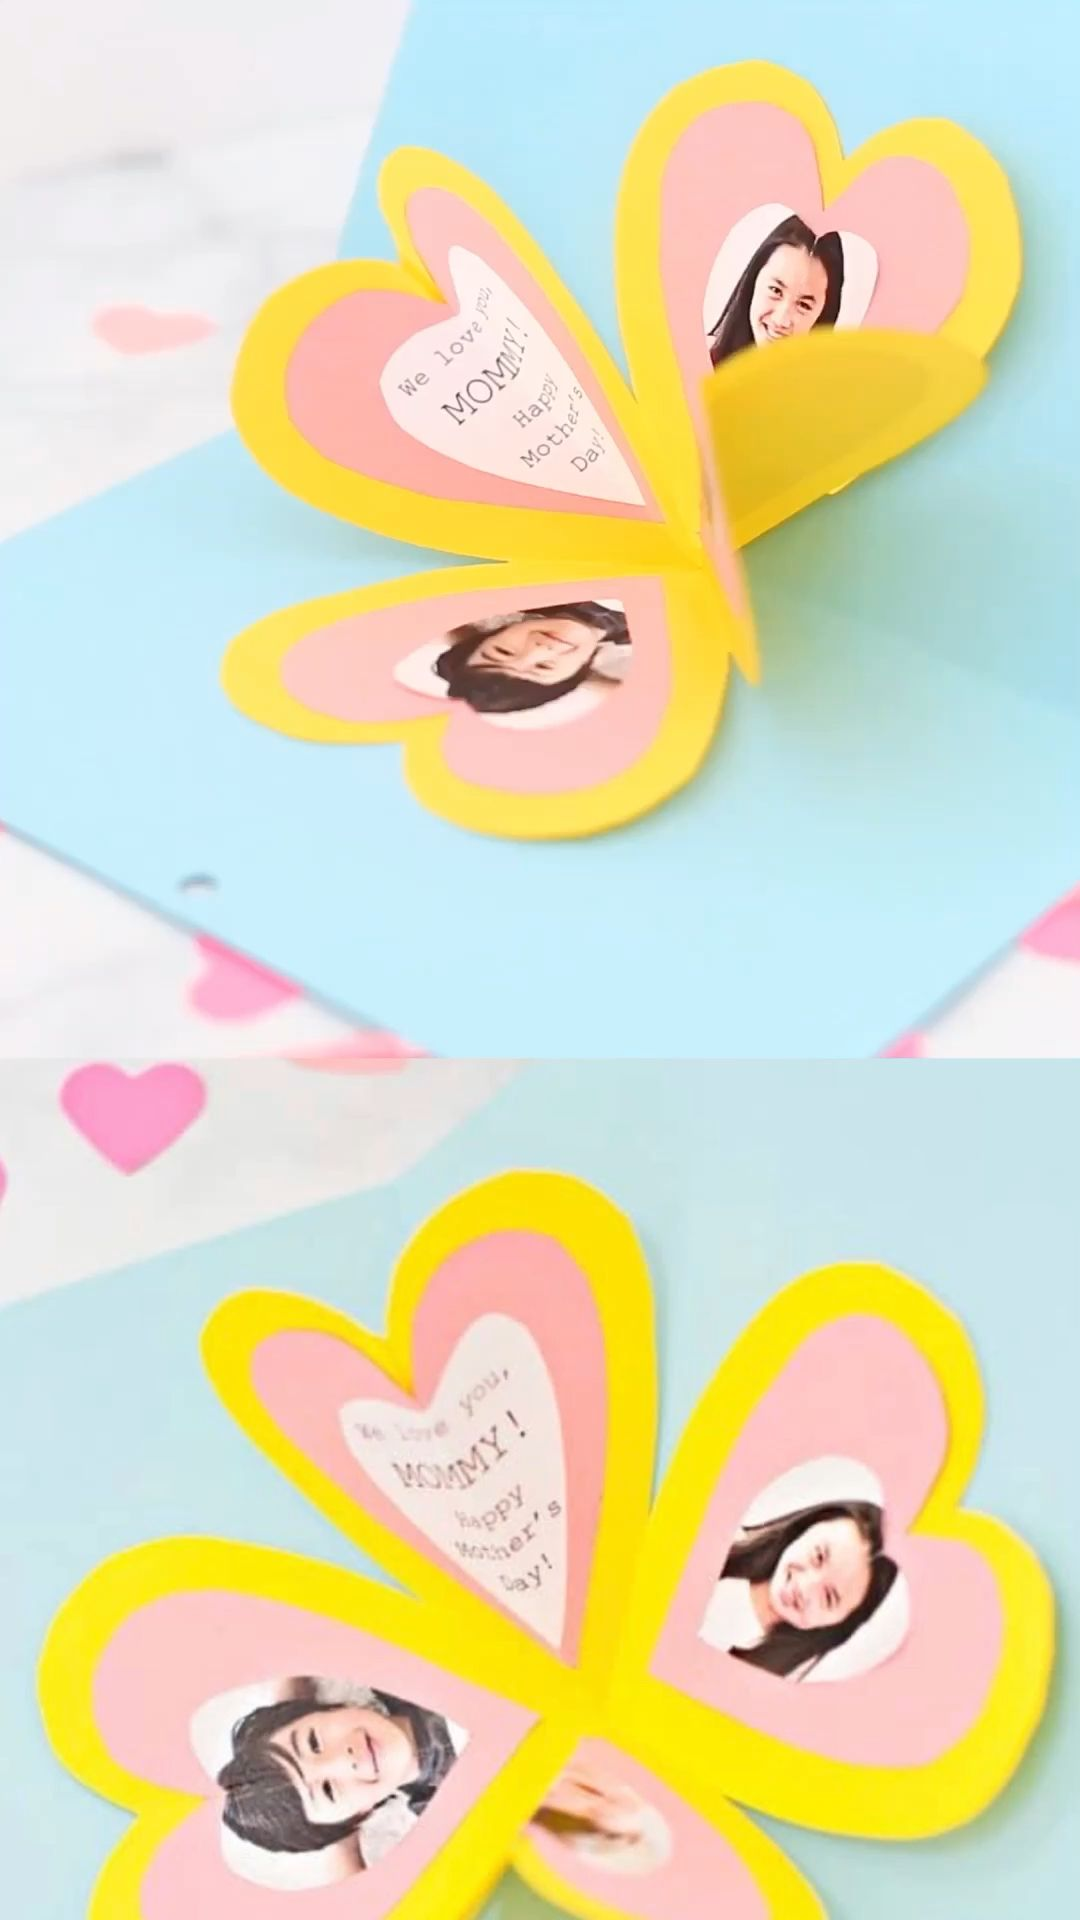 Get The Free Template To Make This Easy Heart Pop Up Card